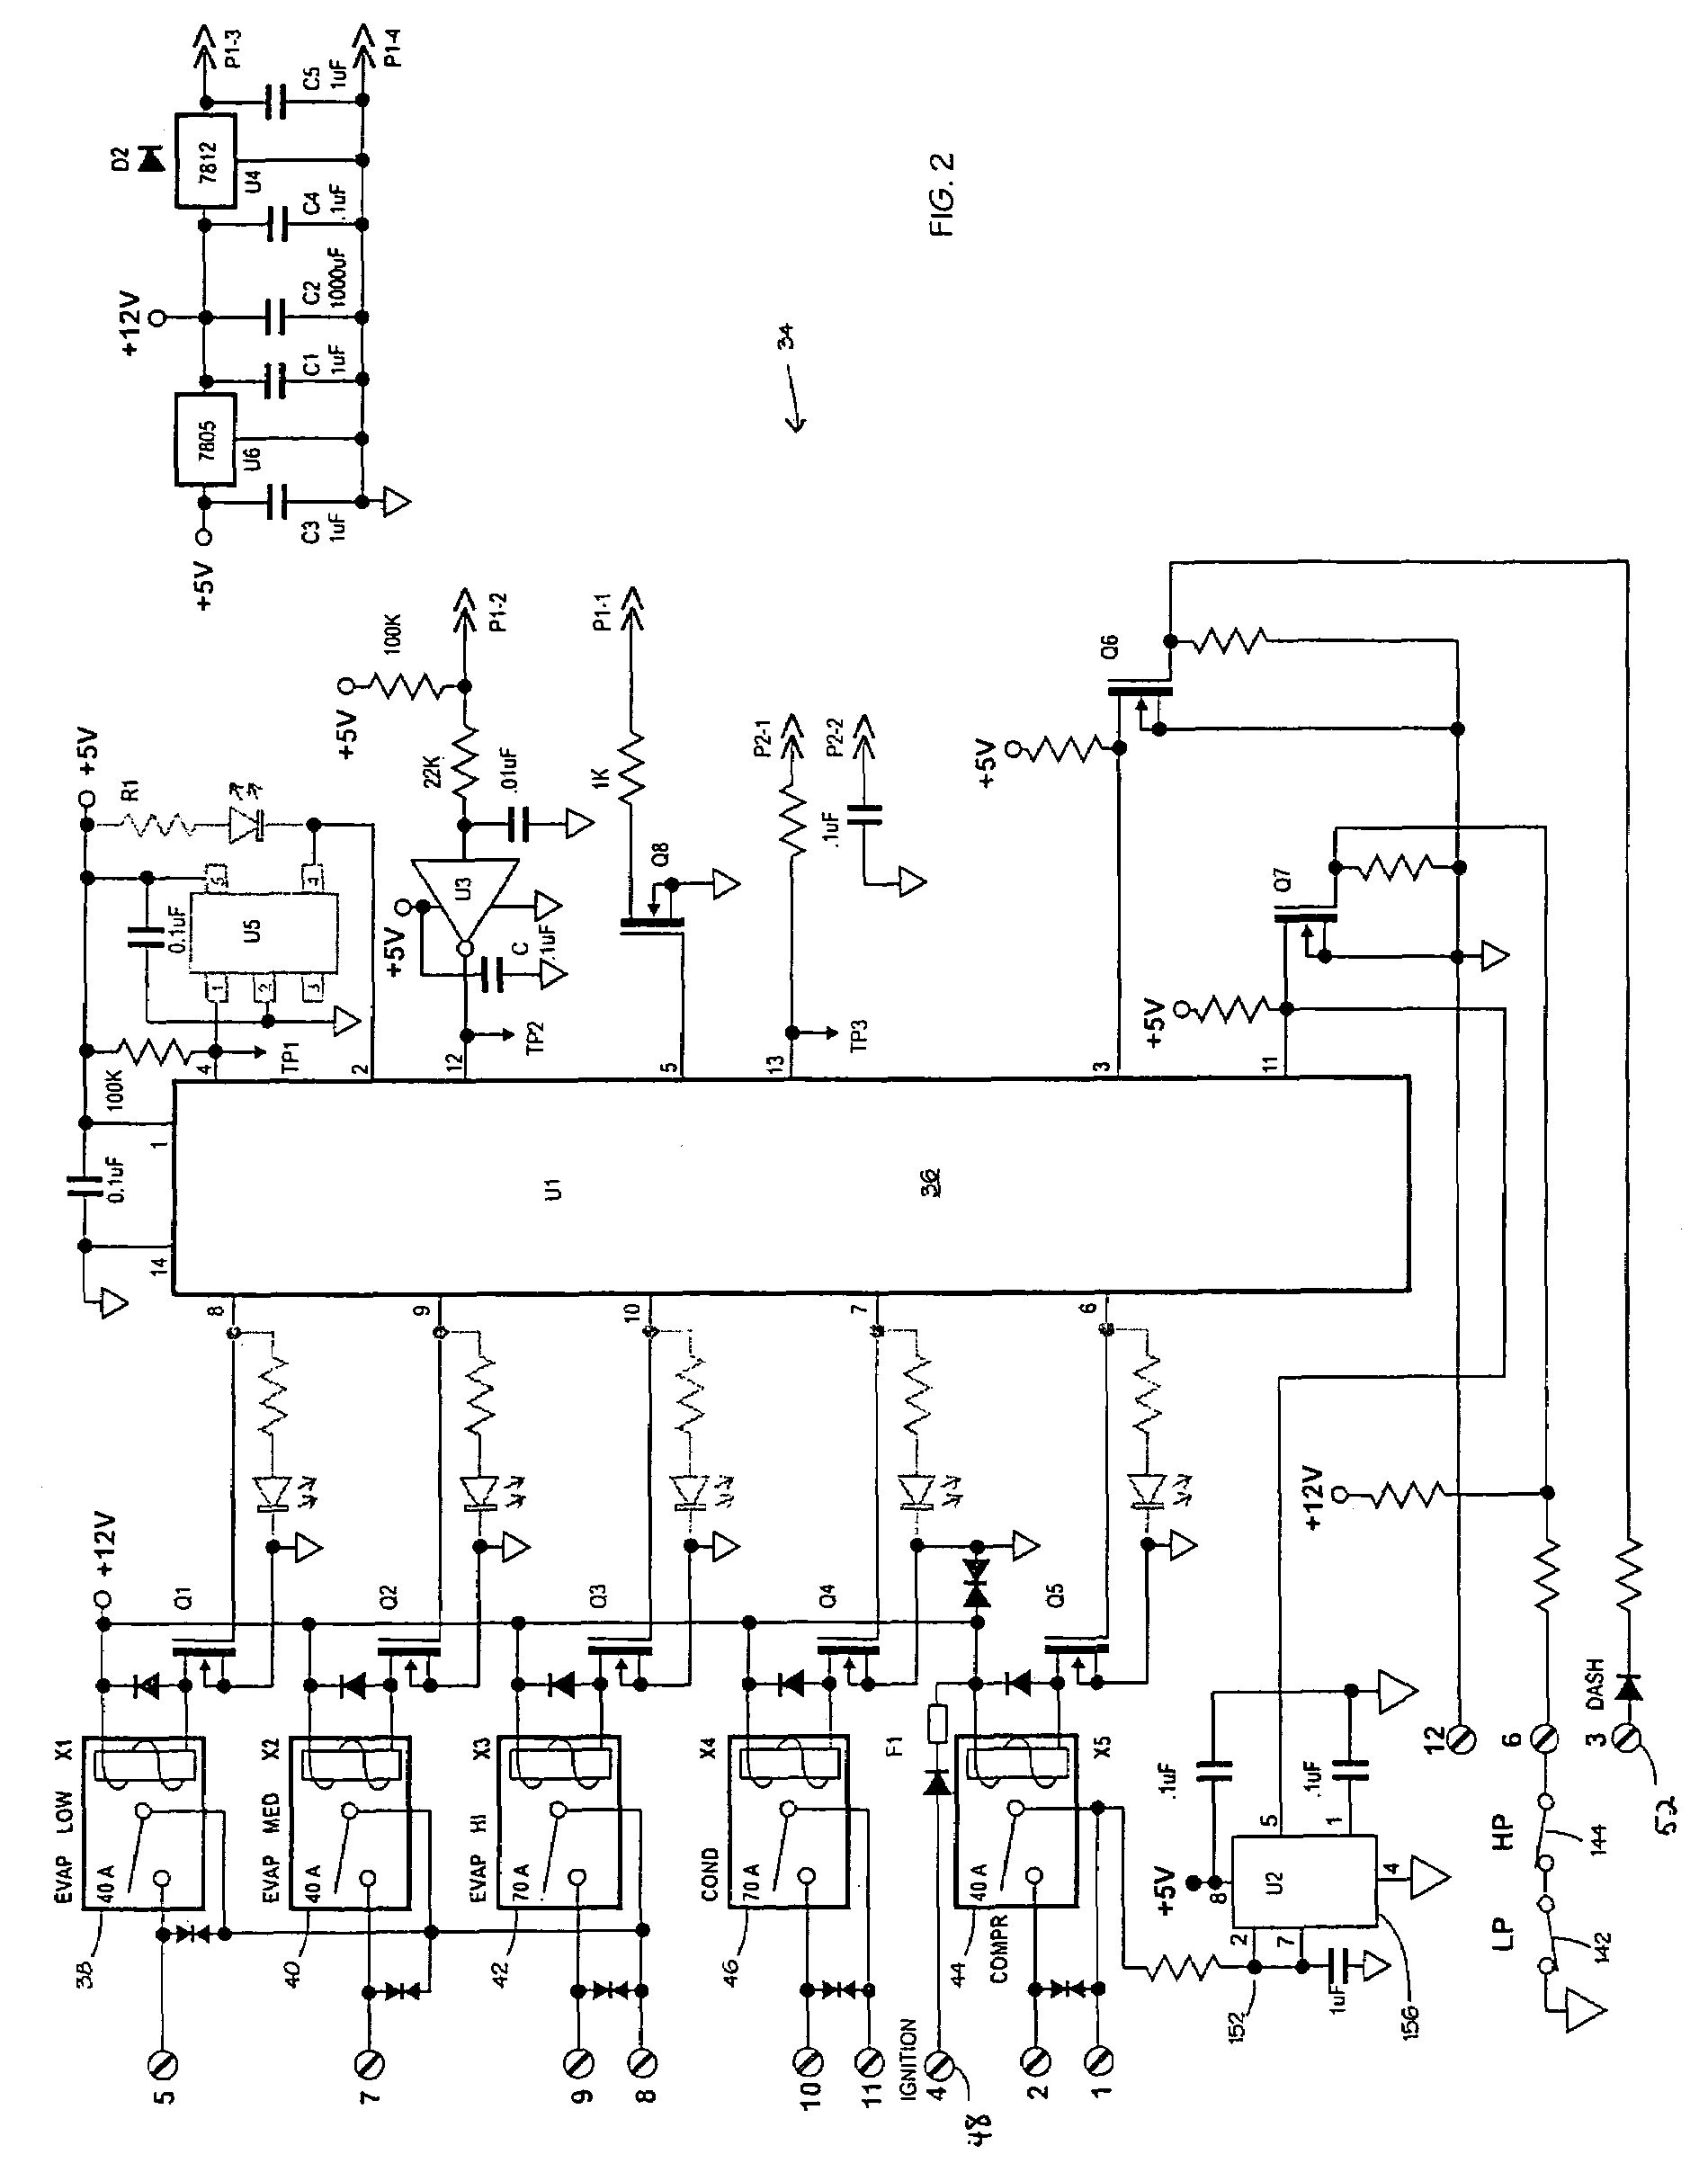 Carrier Bus Air Conditioning Wiring Diagram 43 Circuit Board Schematics Further Electrical Drawing Literature U003e Diagrams Source Patent Us7475559 Electronic Vehicle Climate Control System With